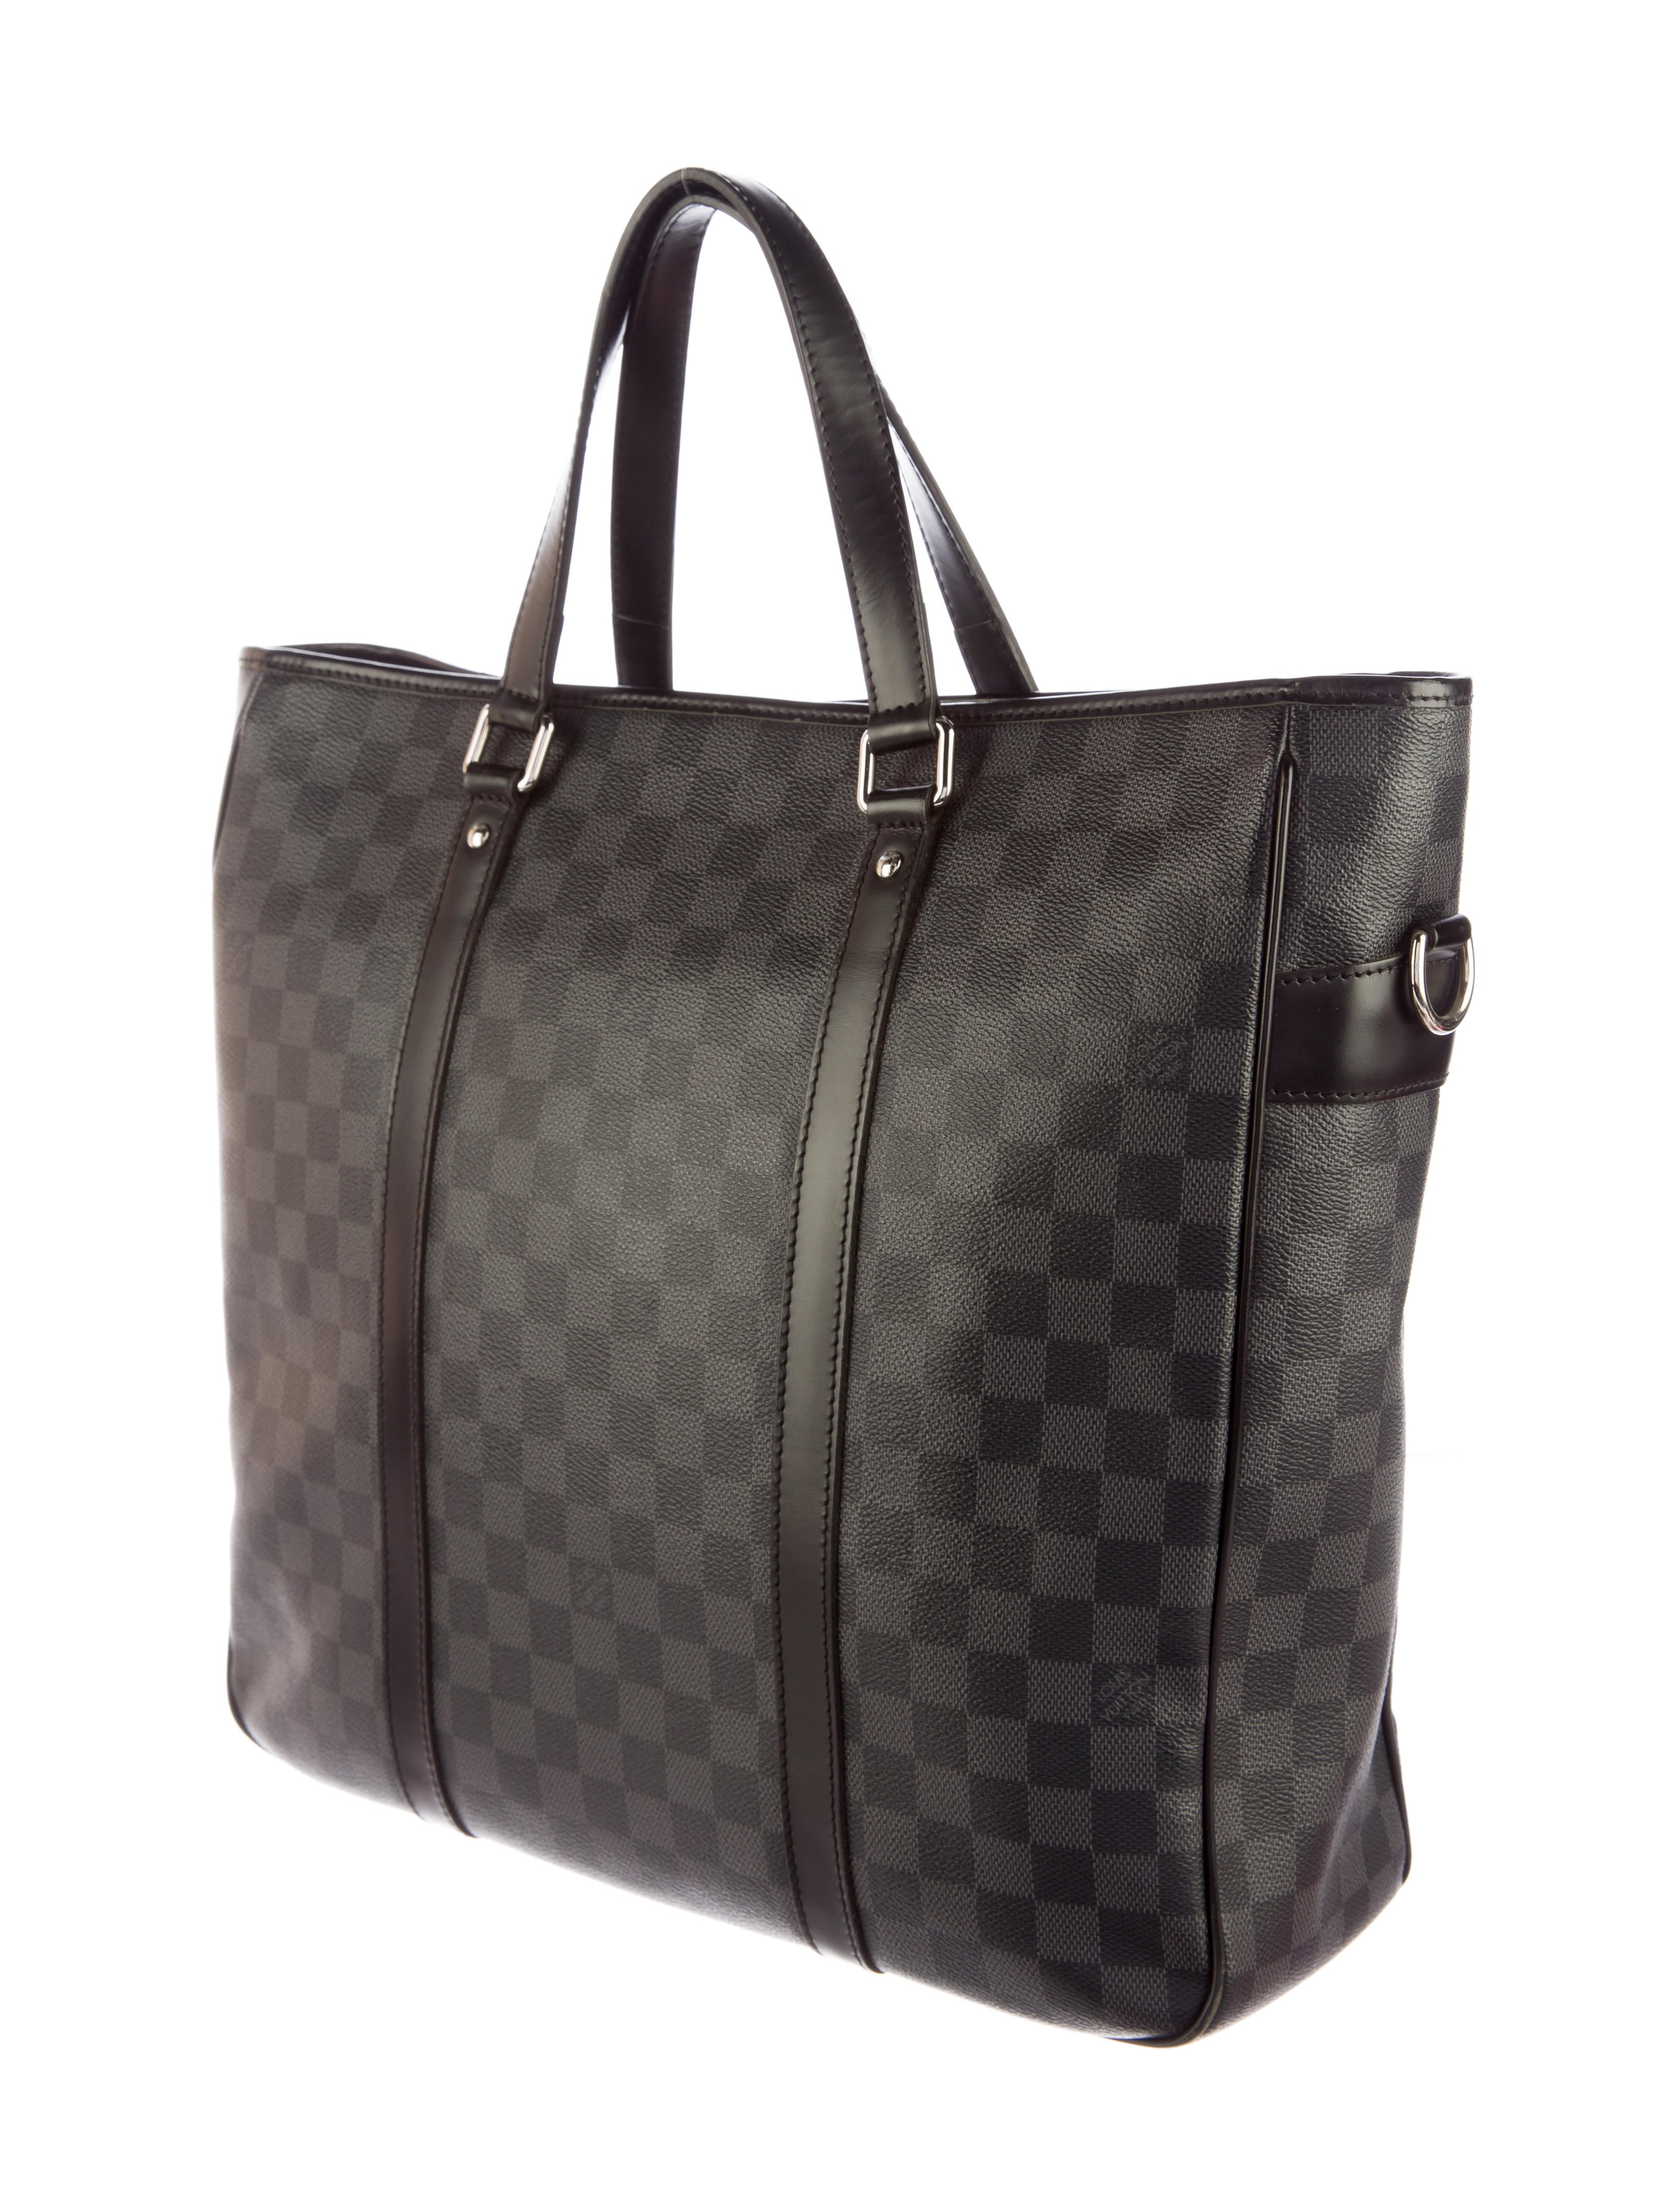 Louis Vuitton Tadao Handbag Damier Graphite Mm GxLfbFPWpK